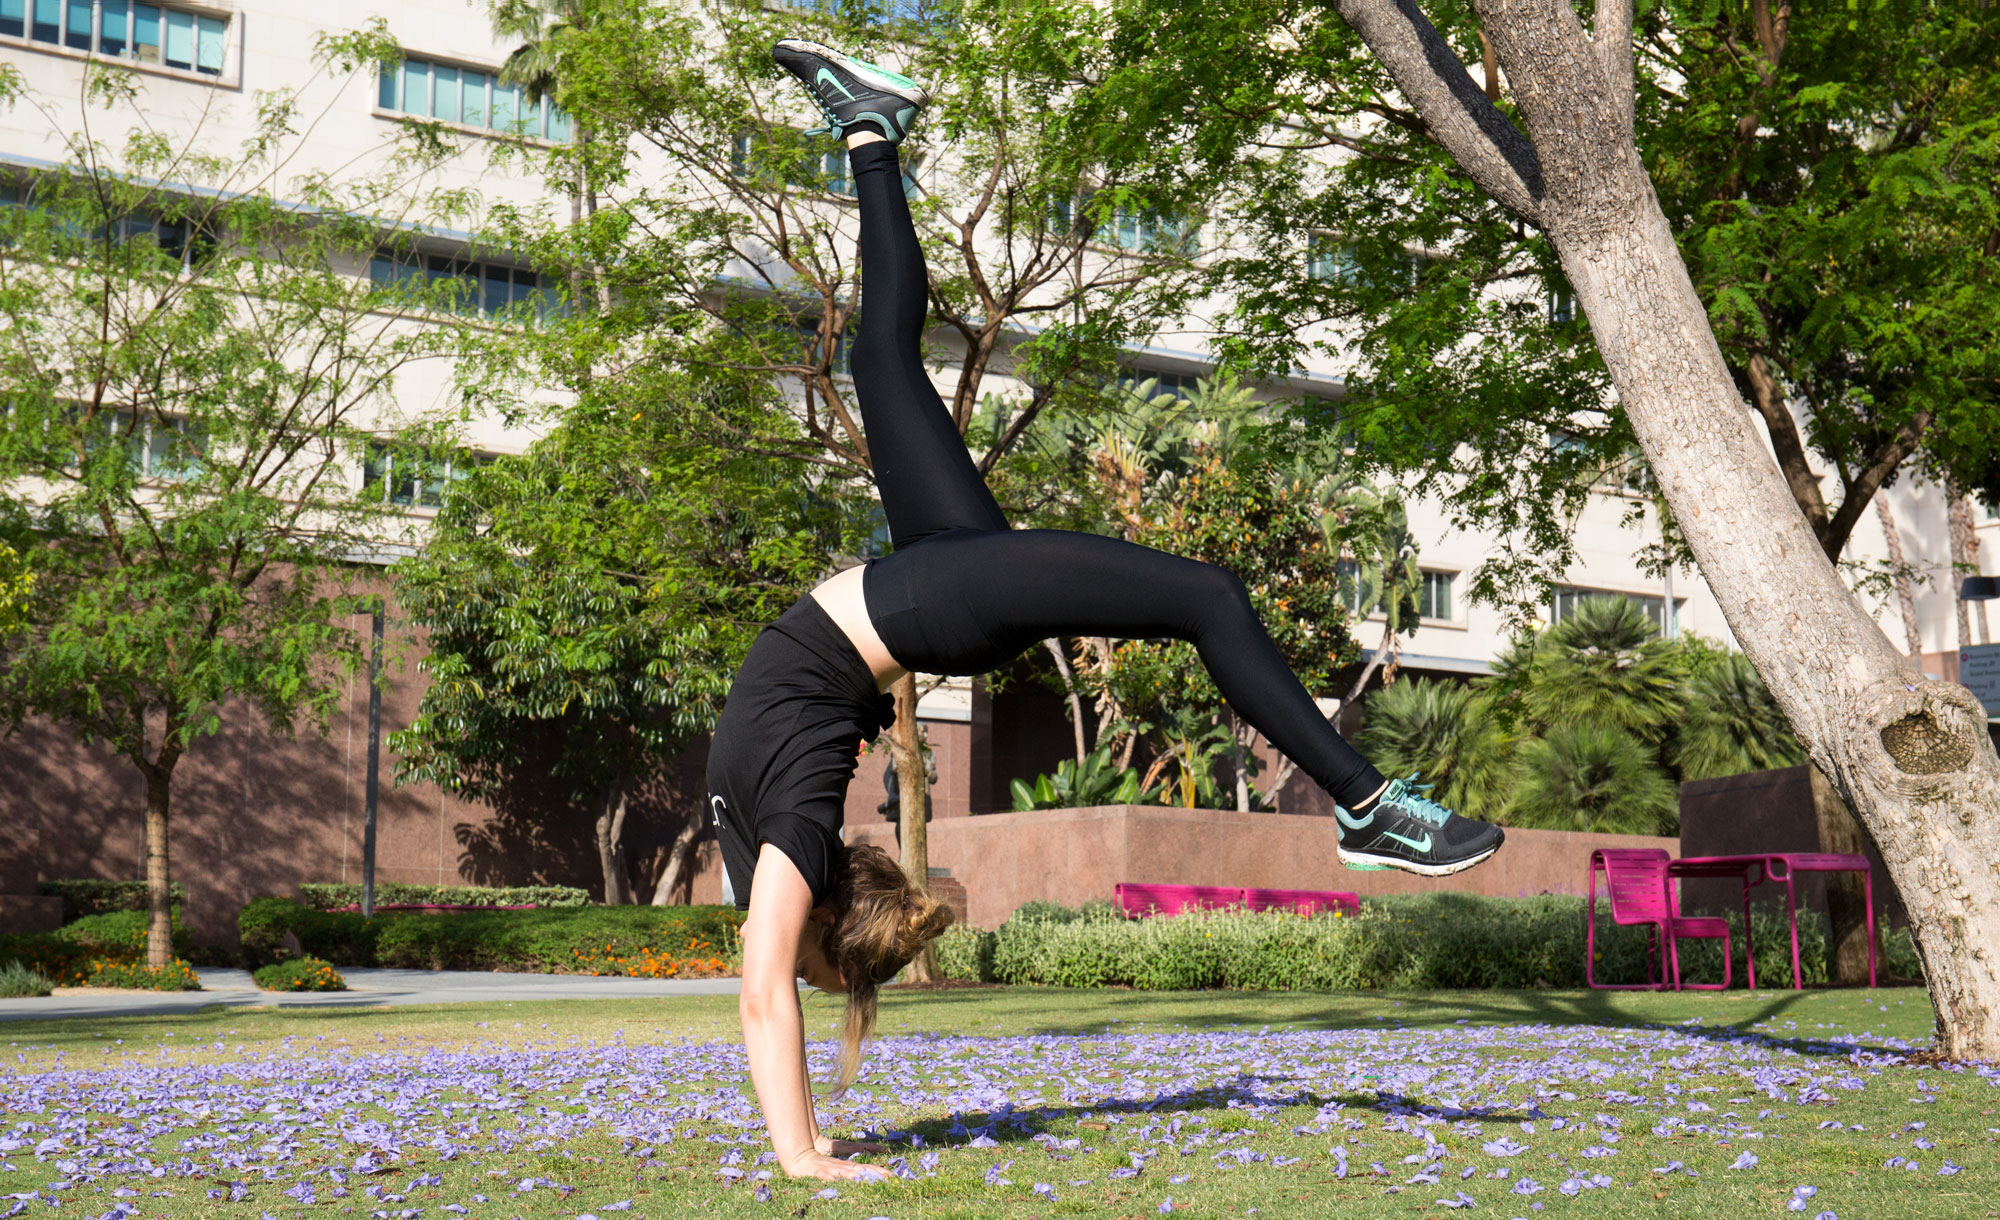 Justine doing a handstand at Grand Park in Downtown Los Angeles, CA